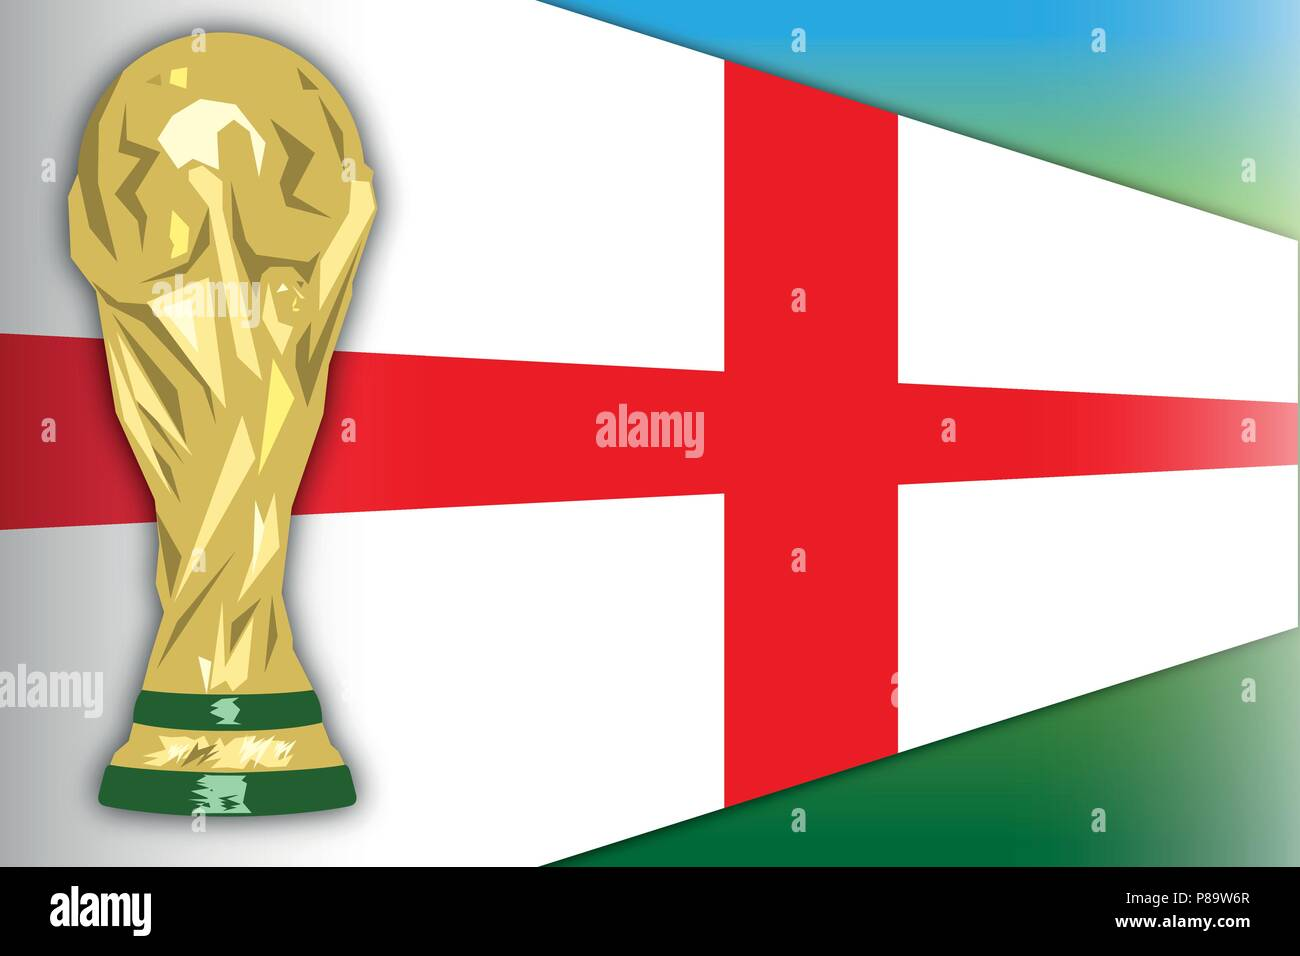 England flag and world cup, Russia 2018, final phase - Stock Vector